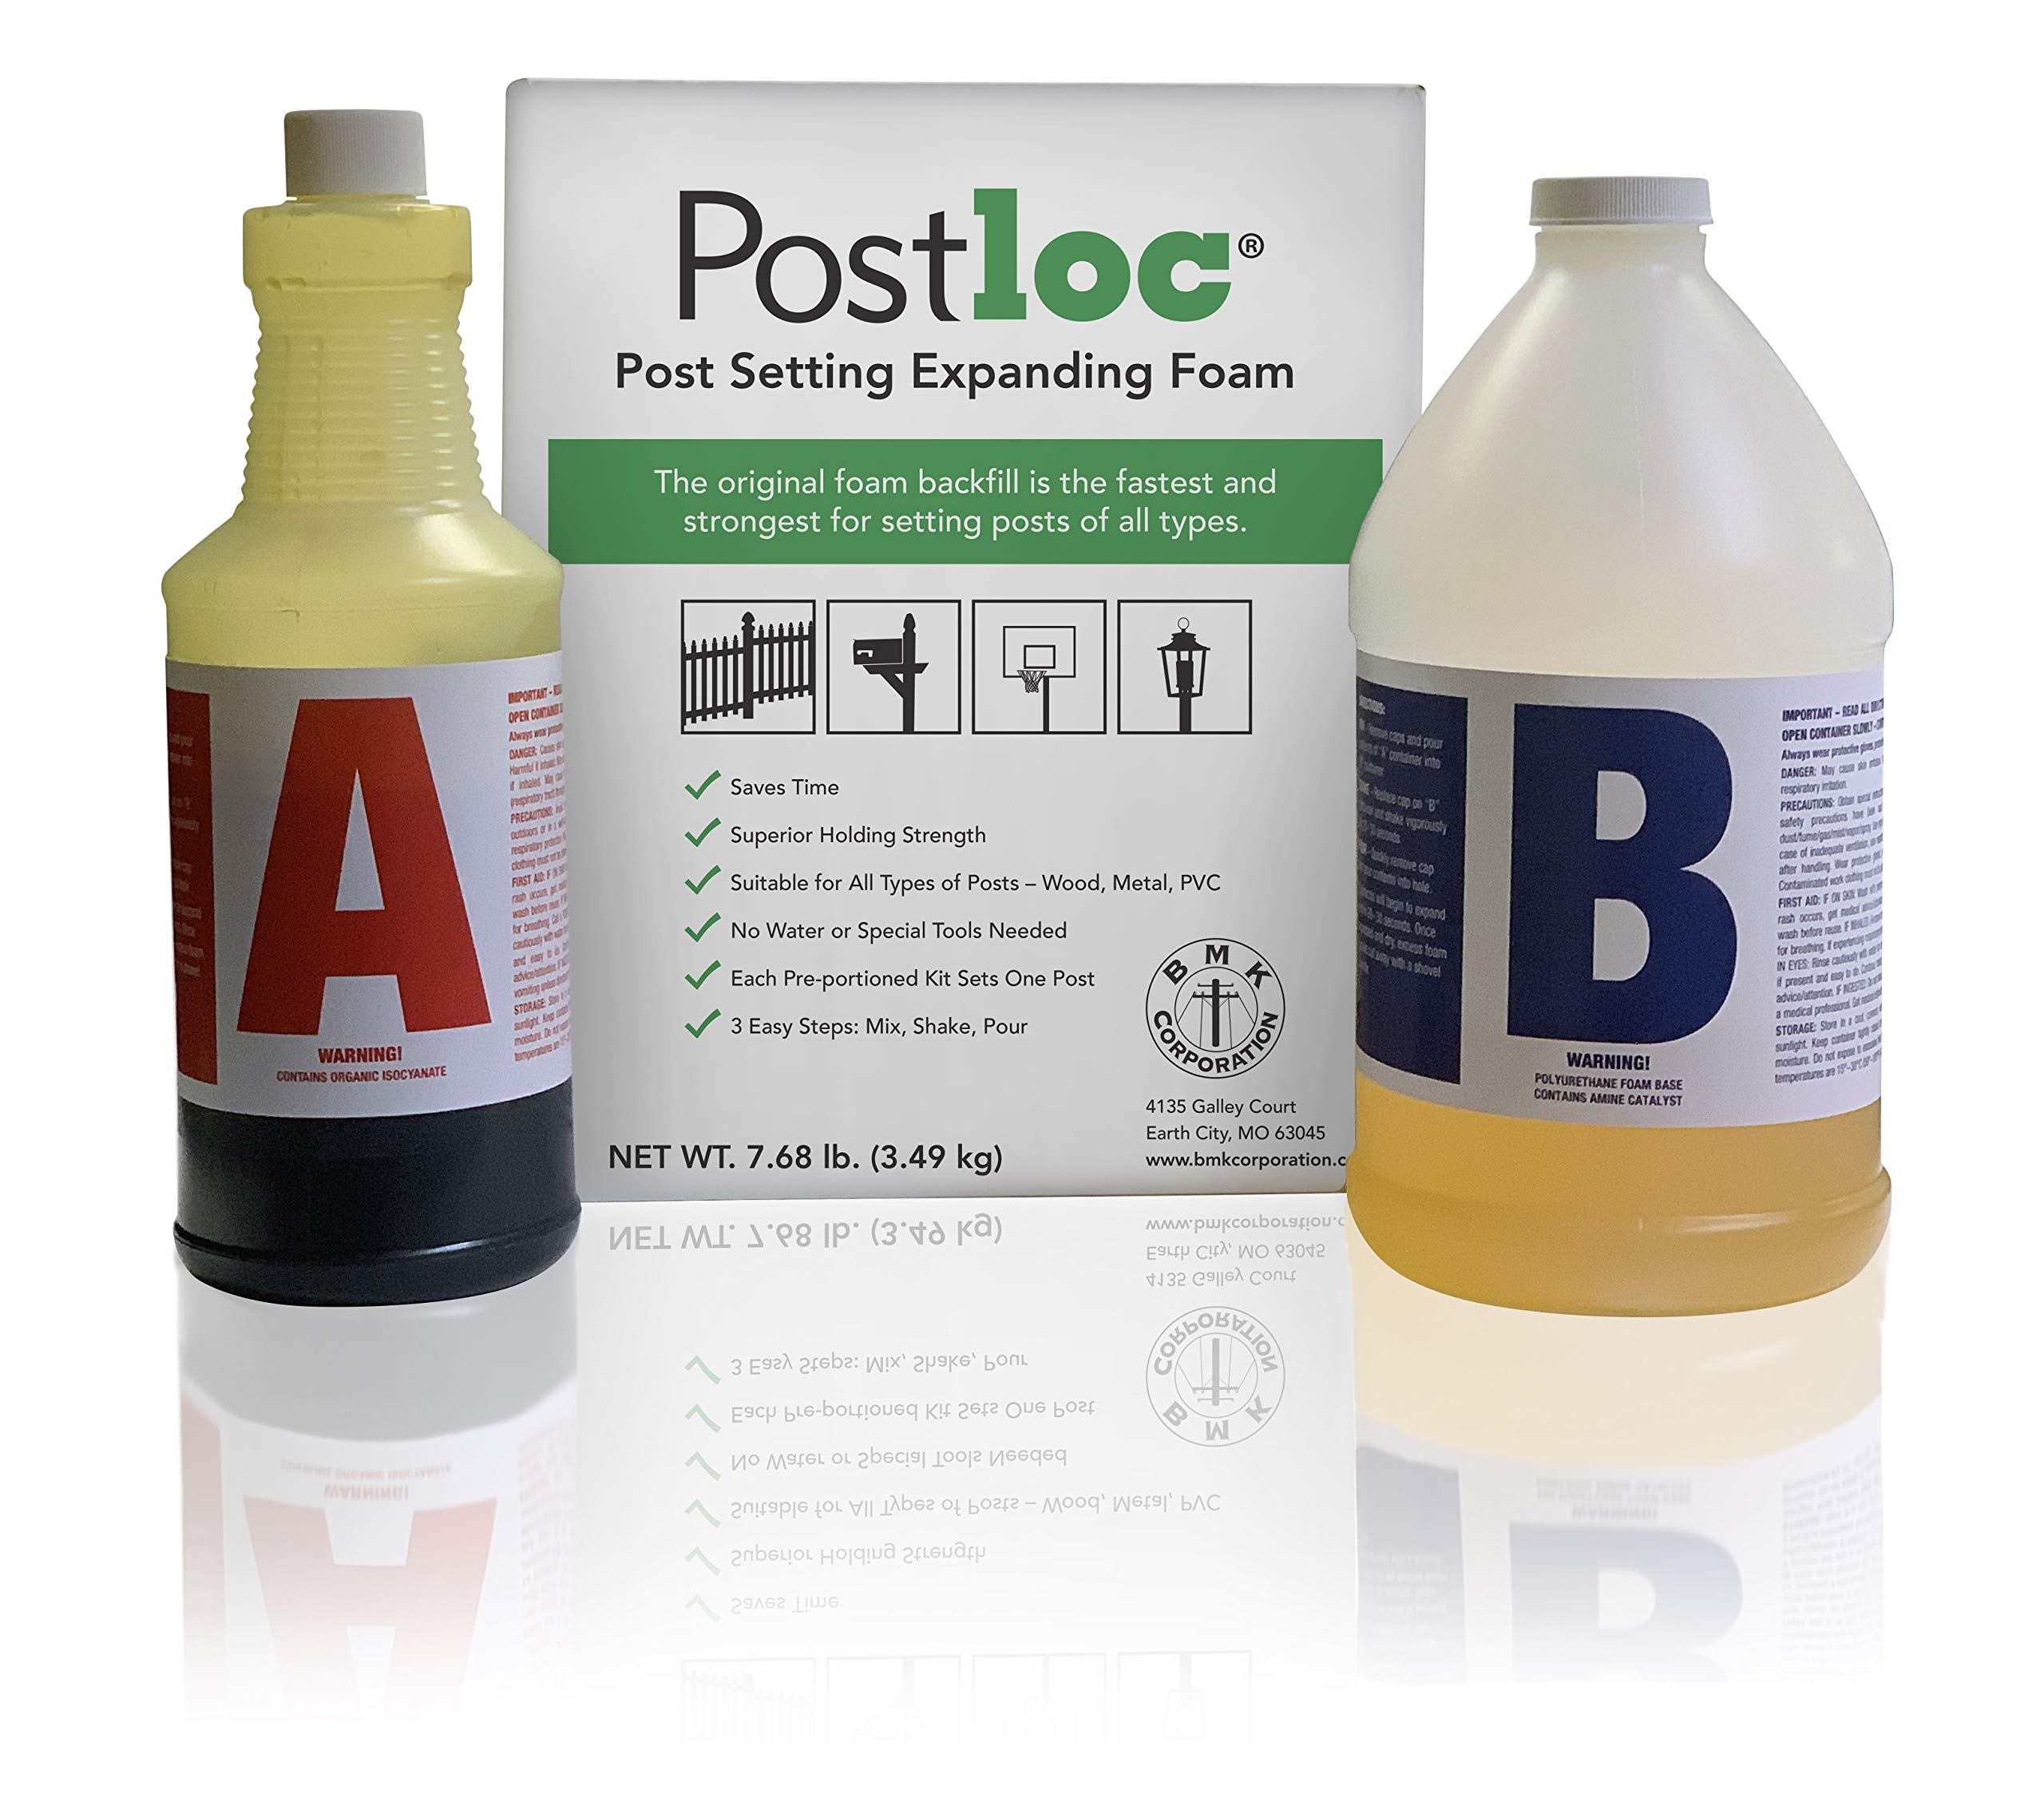 Postloc Post Setting Expanding Foam - 2-Post Kit - Easy-to-Use Concrete Alternative - No Tools Required by Postloc